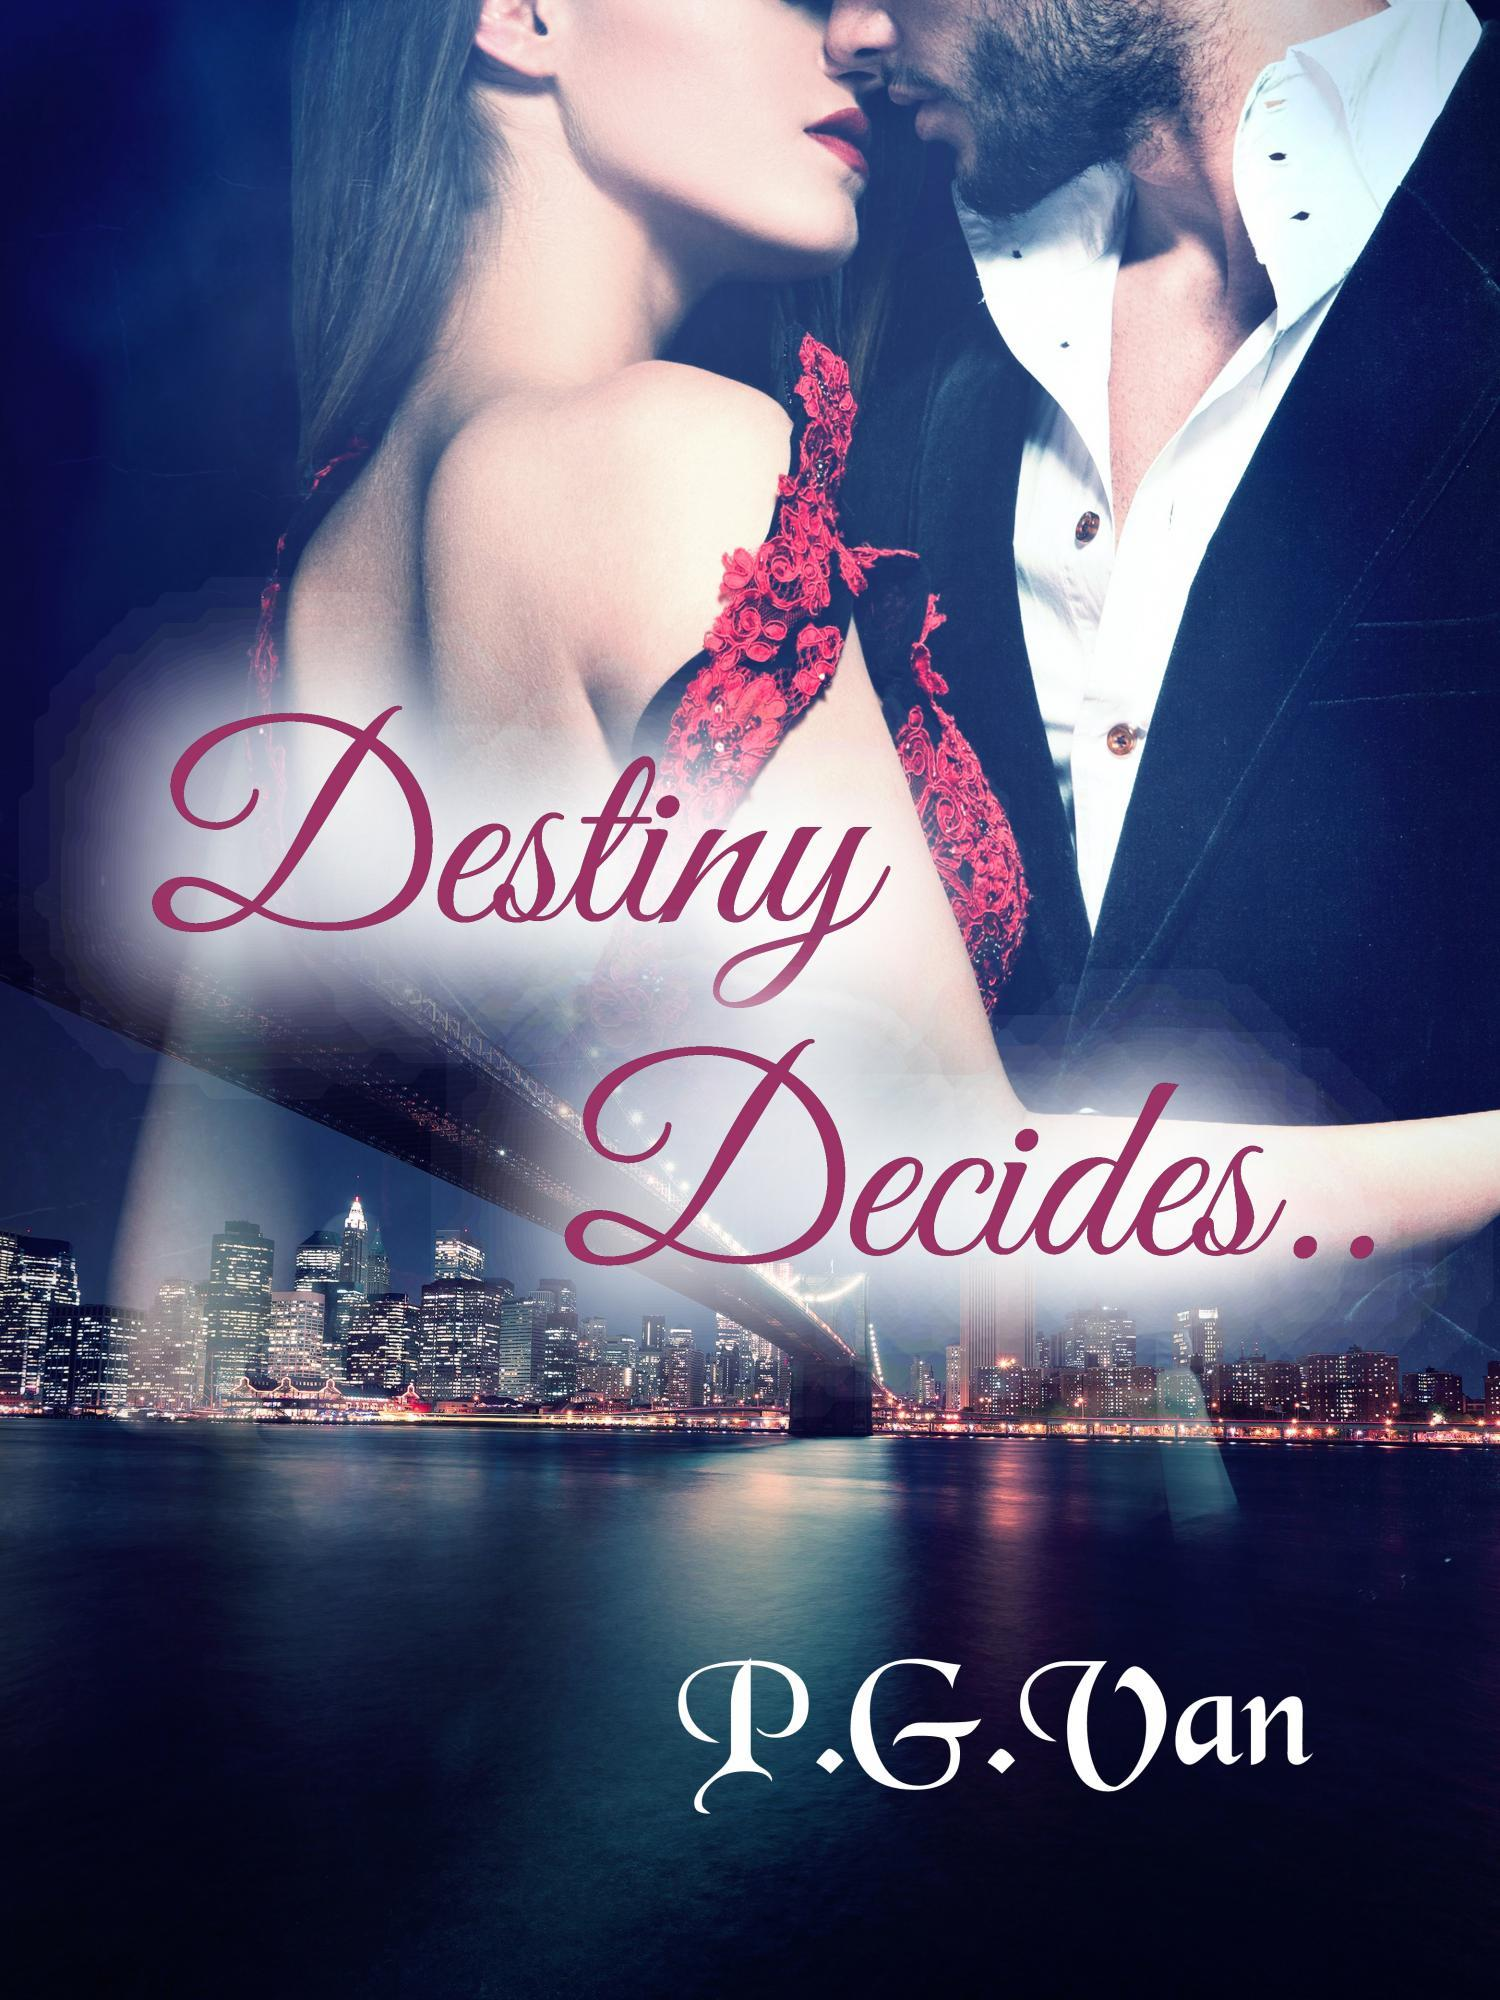 Destiny decides..: A tale of two hearts in search of true love P.G.Van